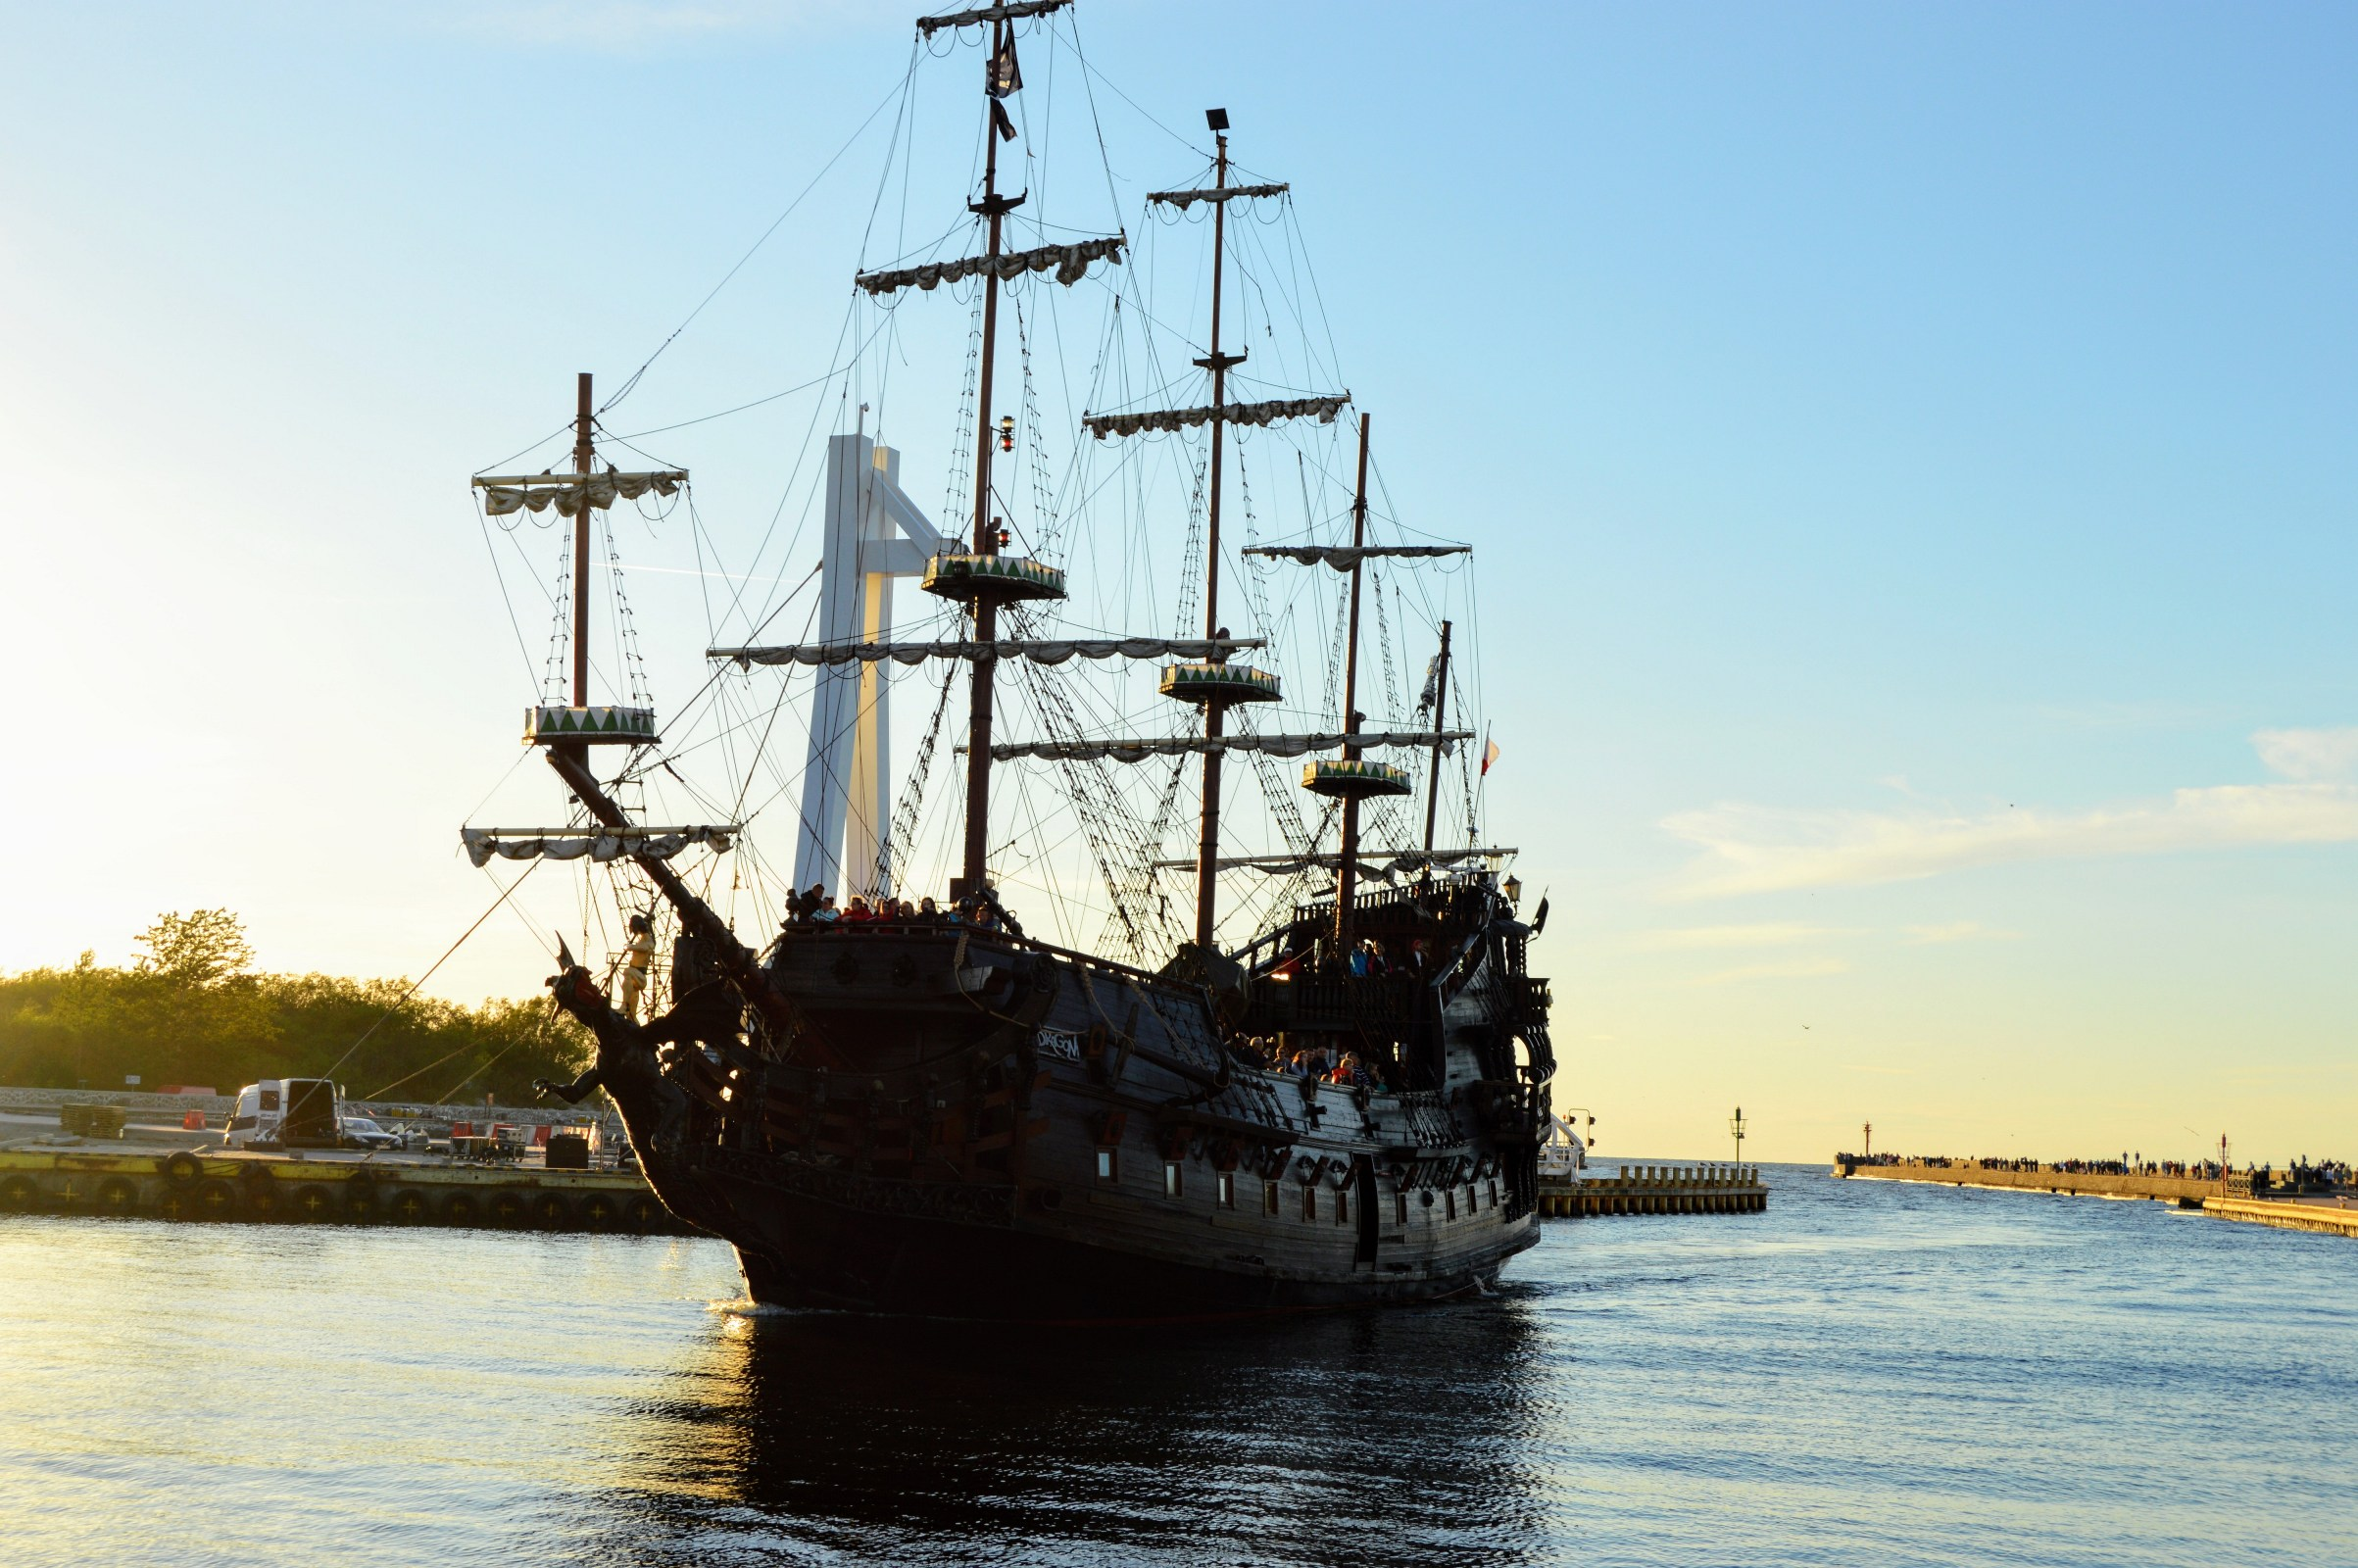 Tourist old sailing ship Galleon enters the harbor, Adventure, Scenic, Polish, Port, HQ Photo